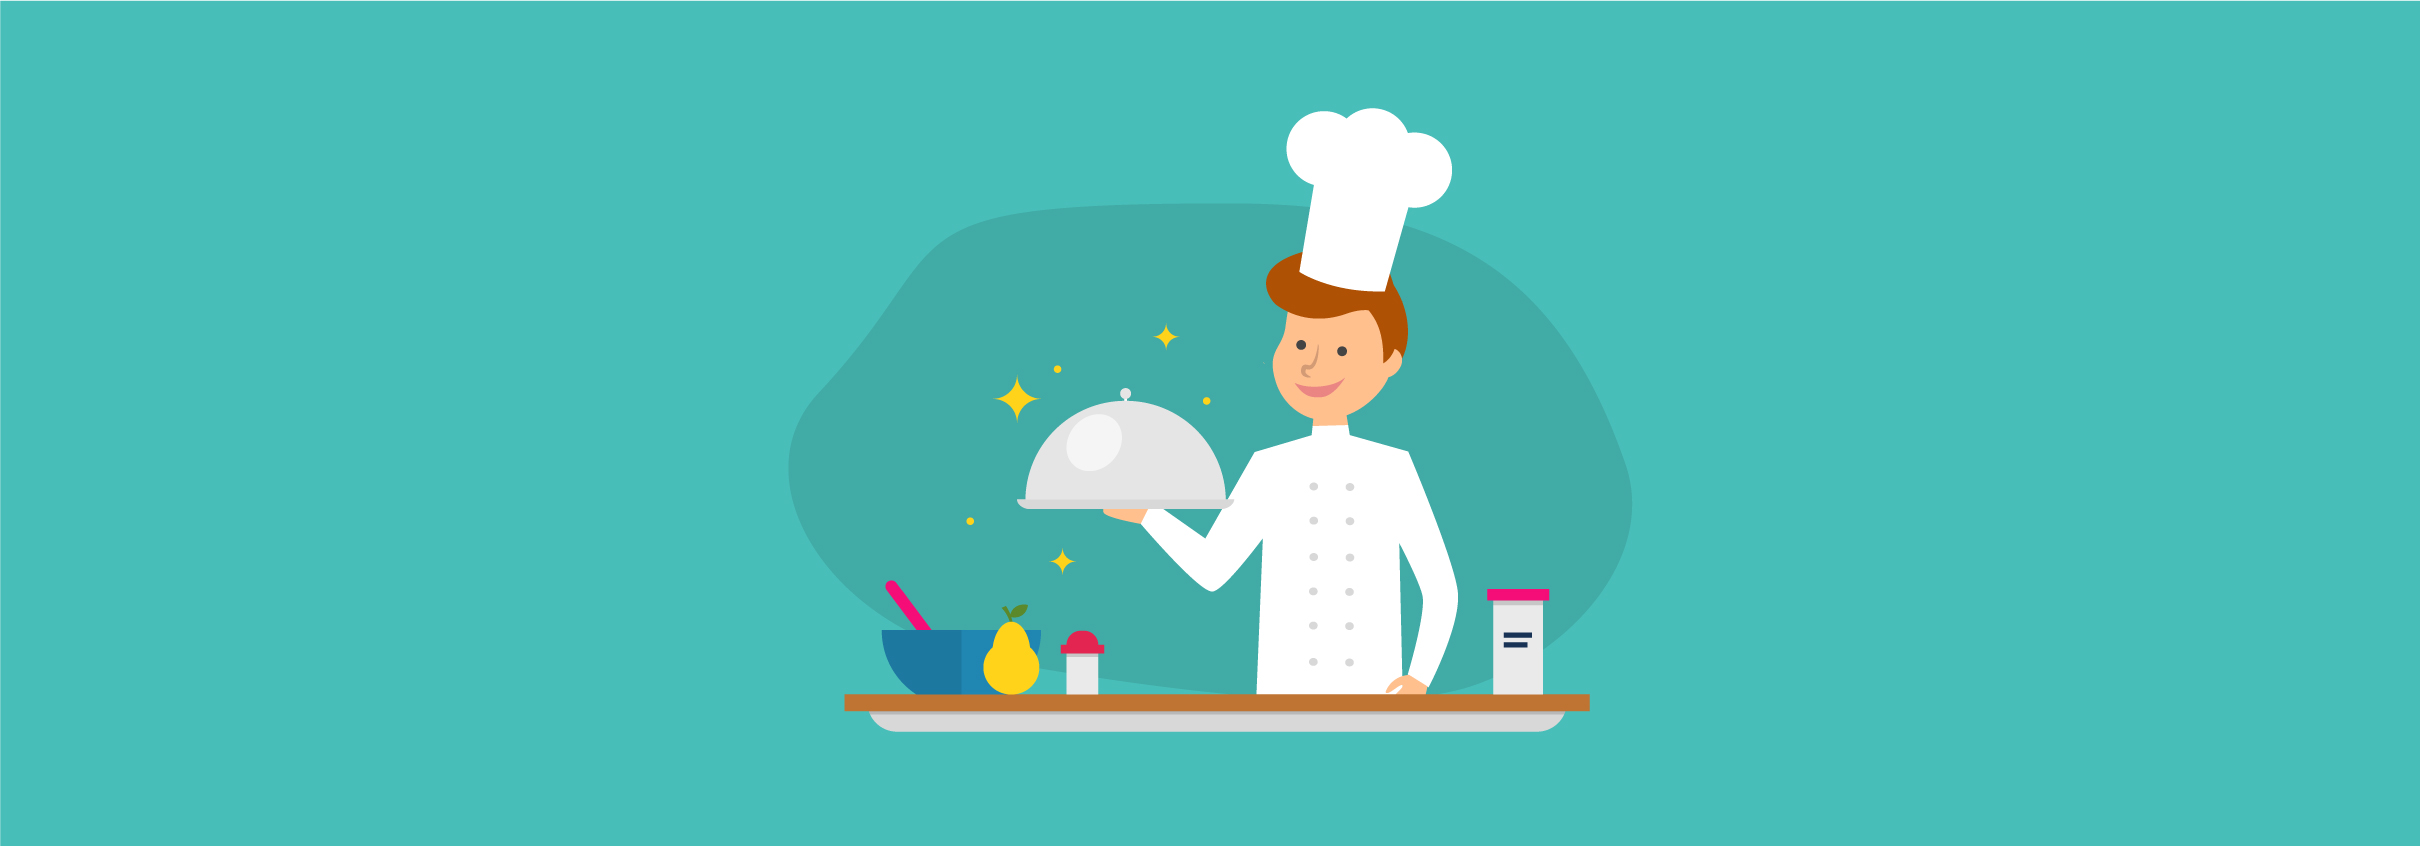 Content Marketing vs. Content Strategy: How to Cook Up Great Content (Your Recipe for Success) Infographic